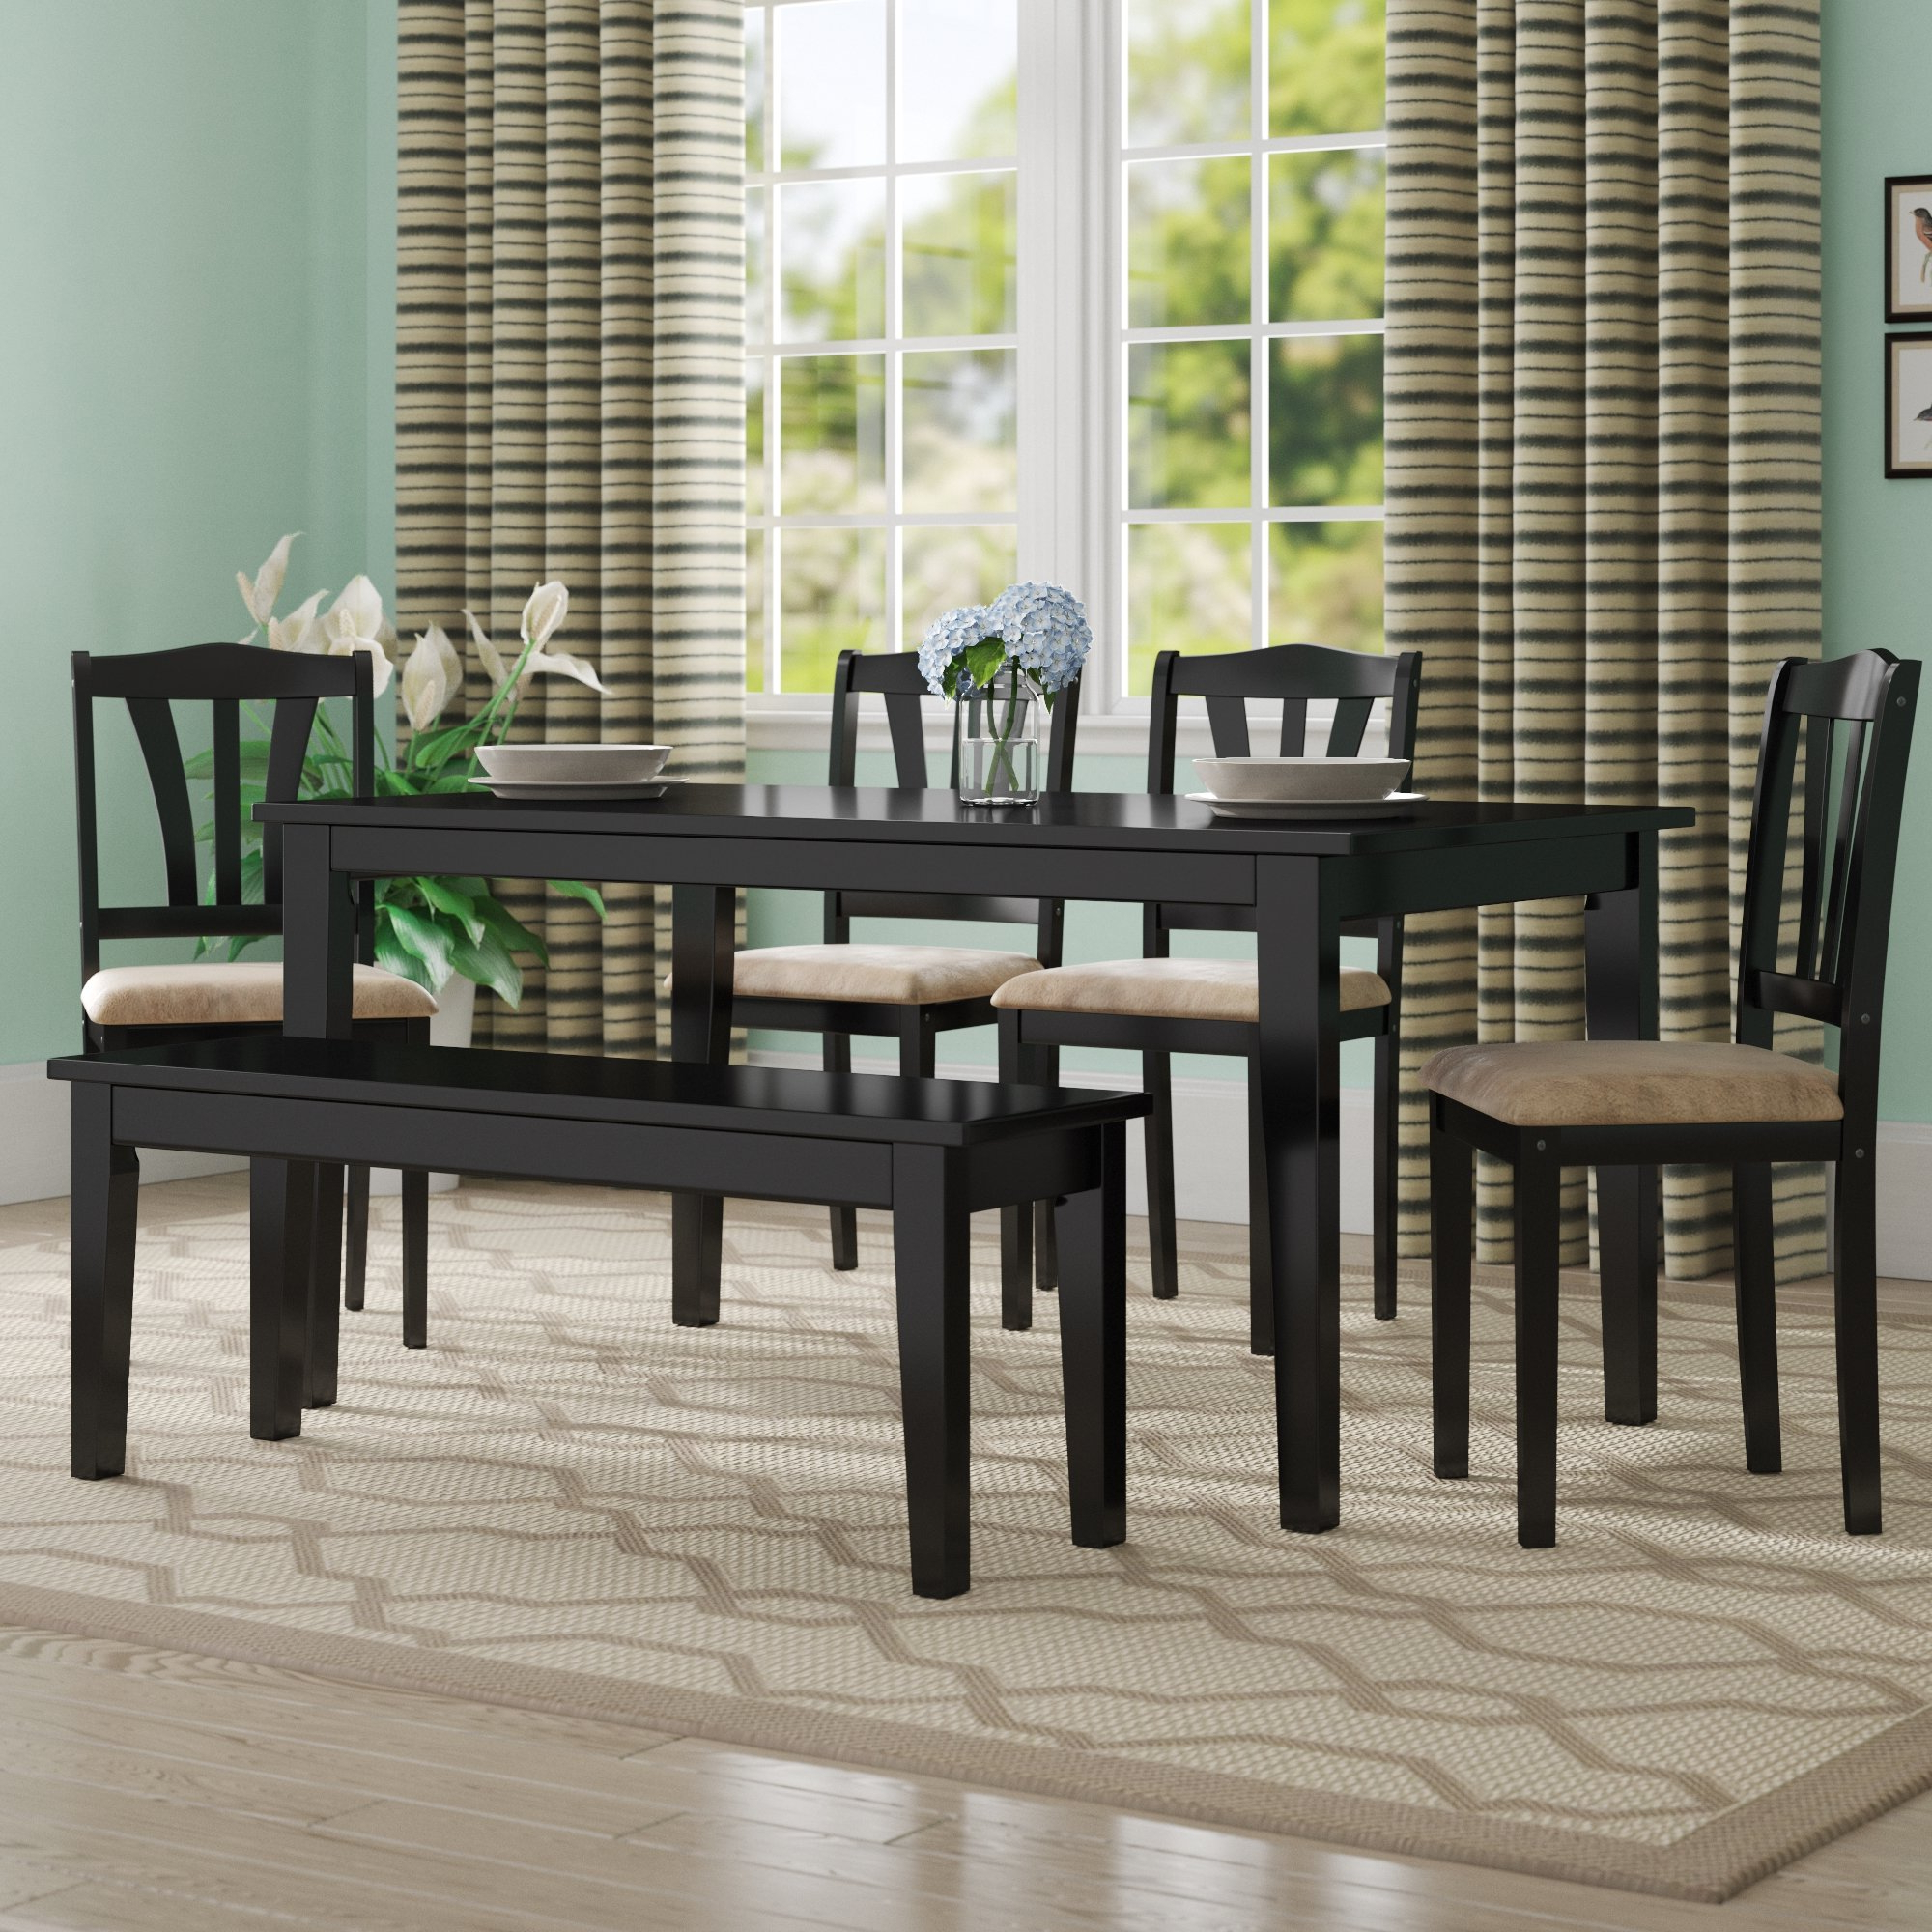 Wayfair Intended For Fashionable Partin 3 Piece Dining Sets (View 10 of 25)